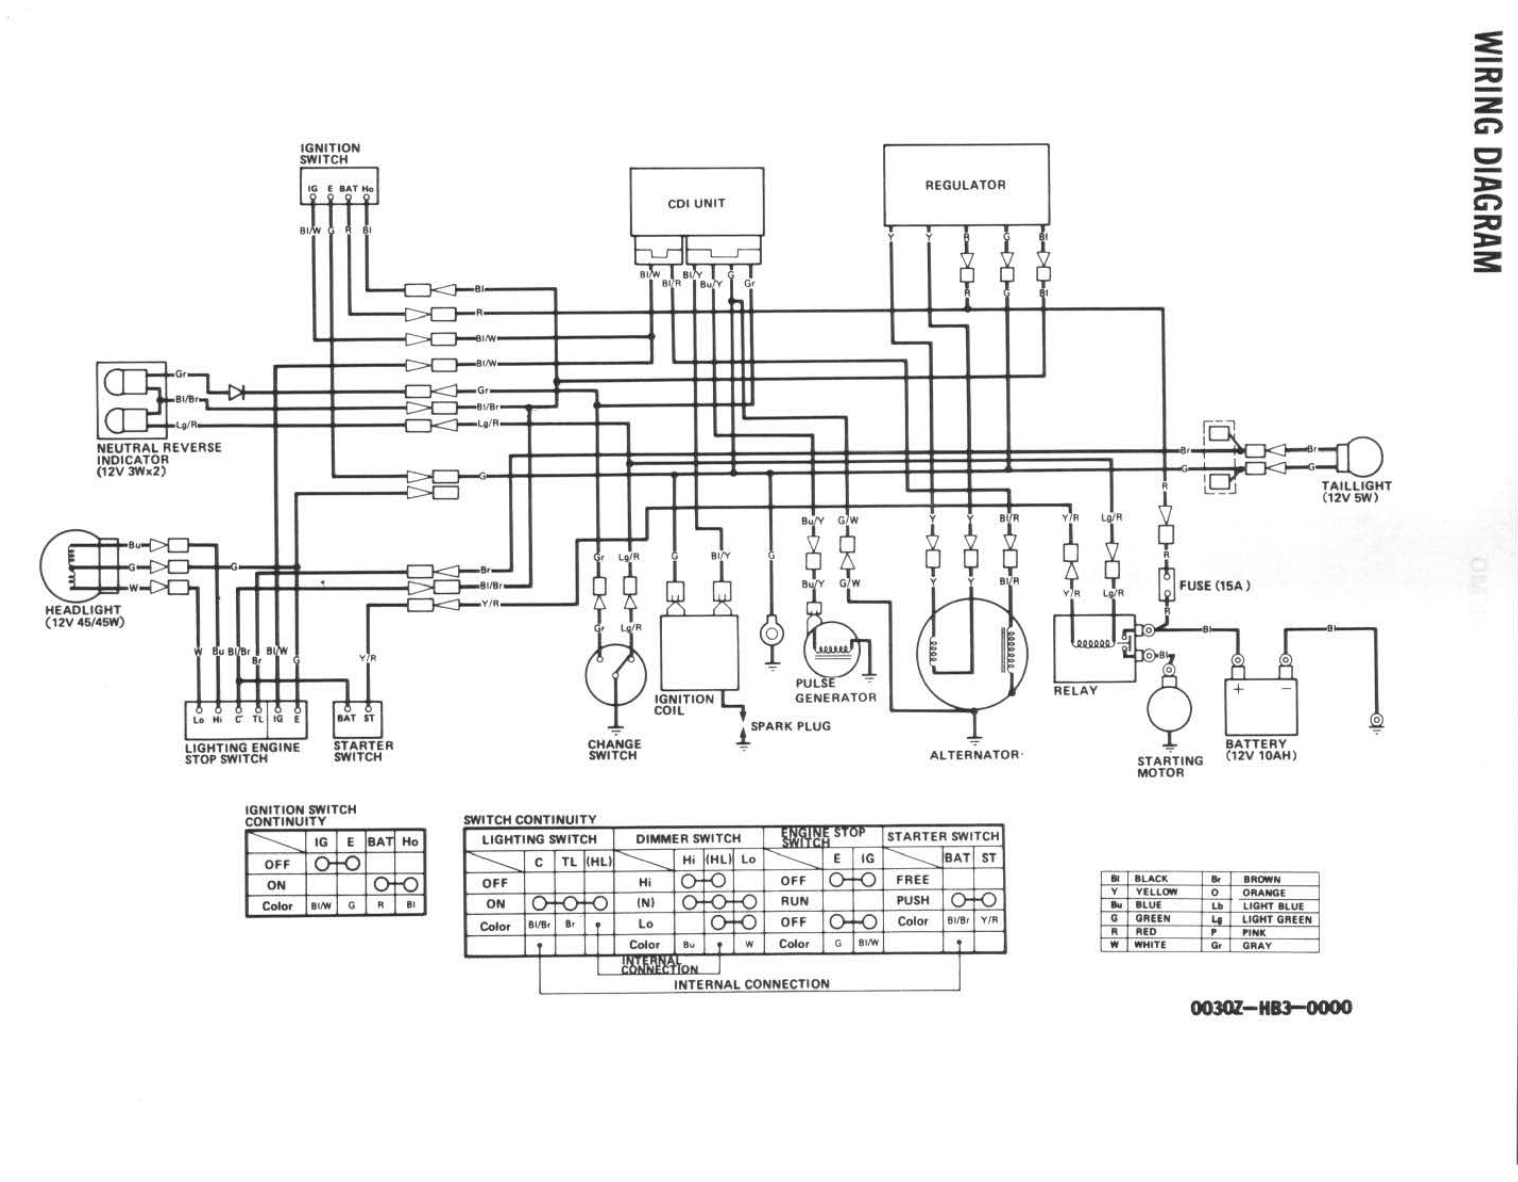 Suzuki Outboard Engine Wiring Diagram